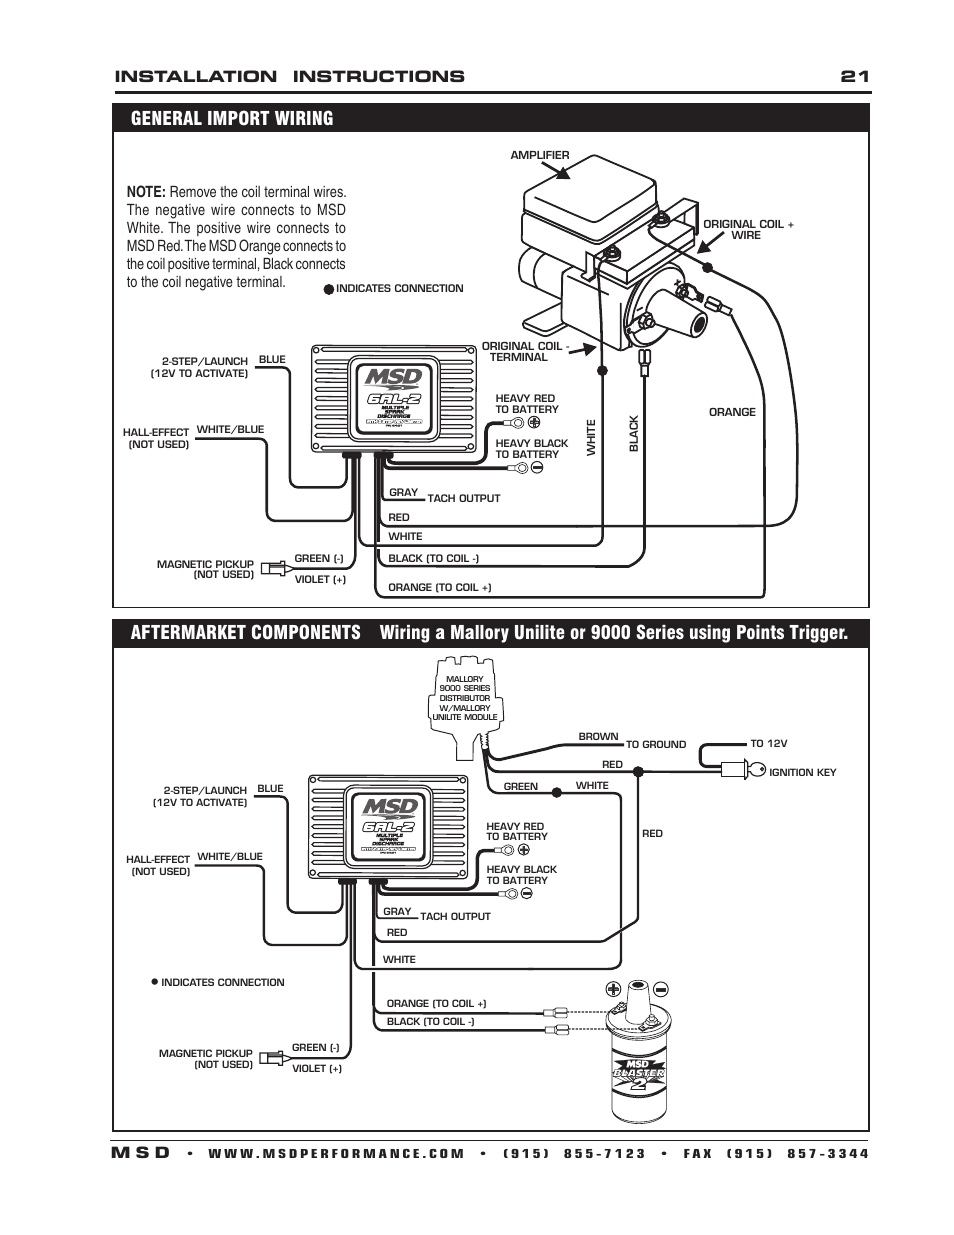 Cool Msd Two Step Wiring Diagram Contemporary - Wiring Schematics ...